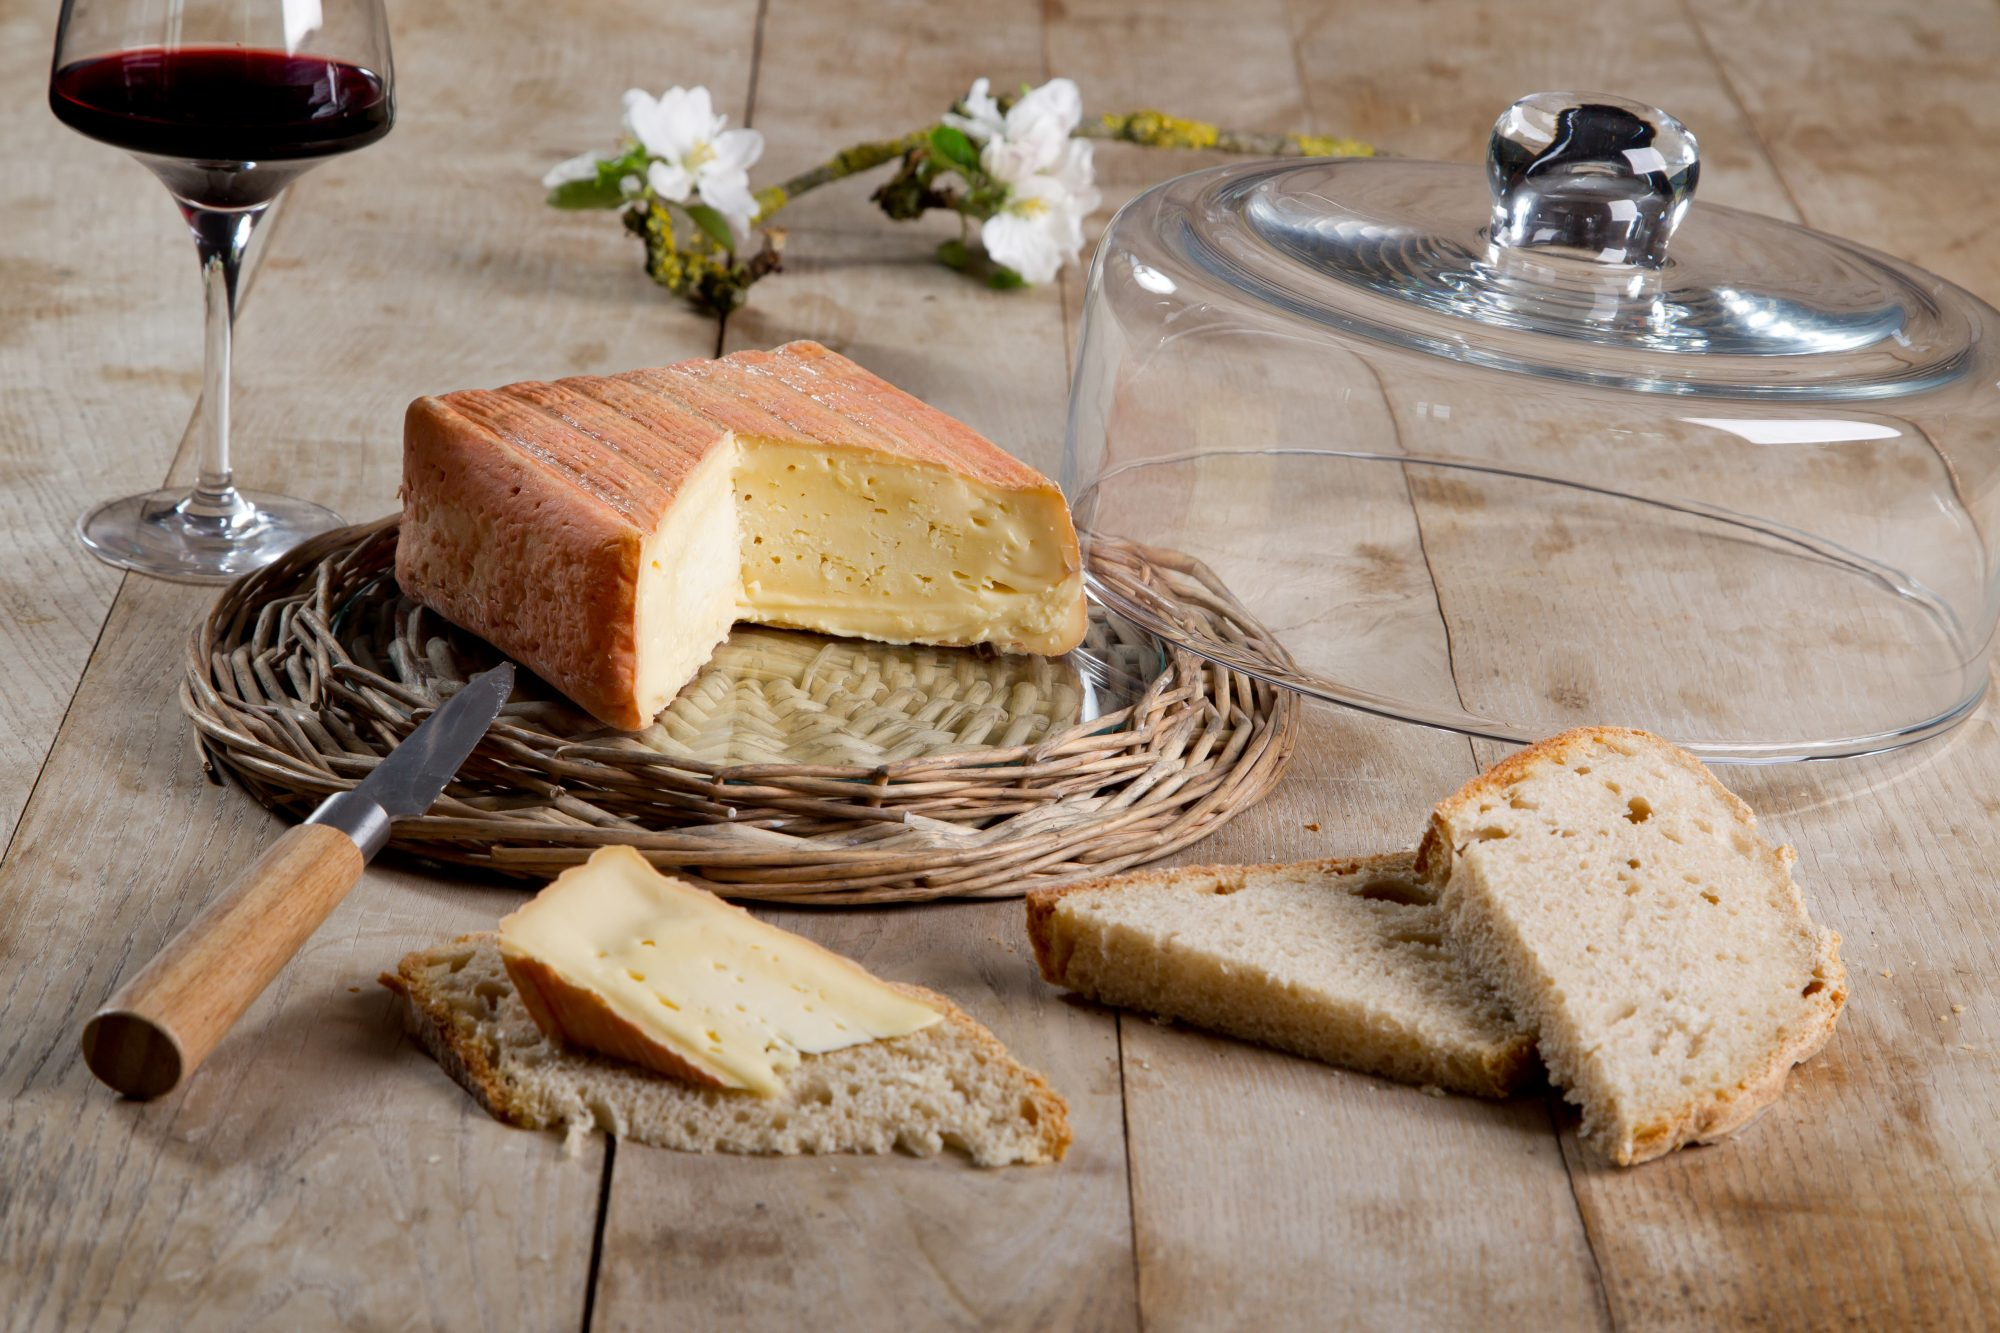 getty-french-cheese-image